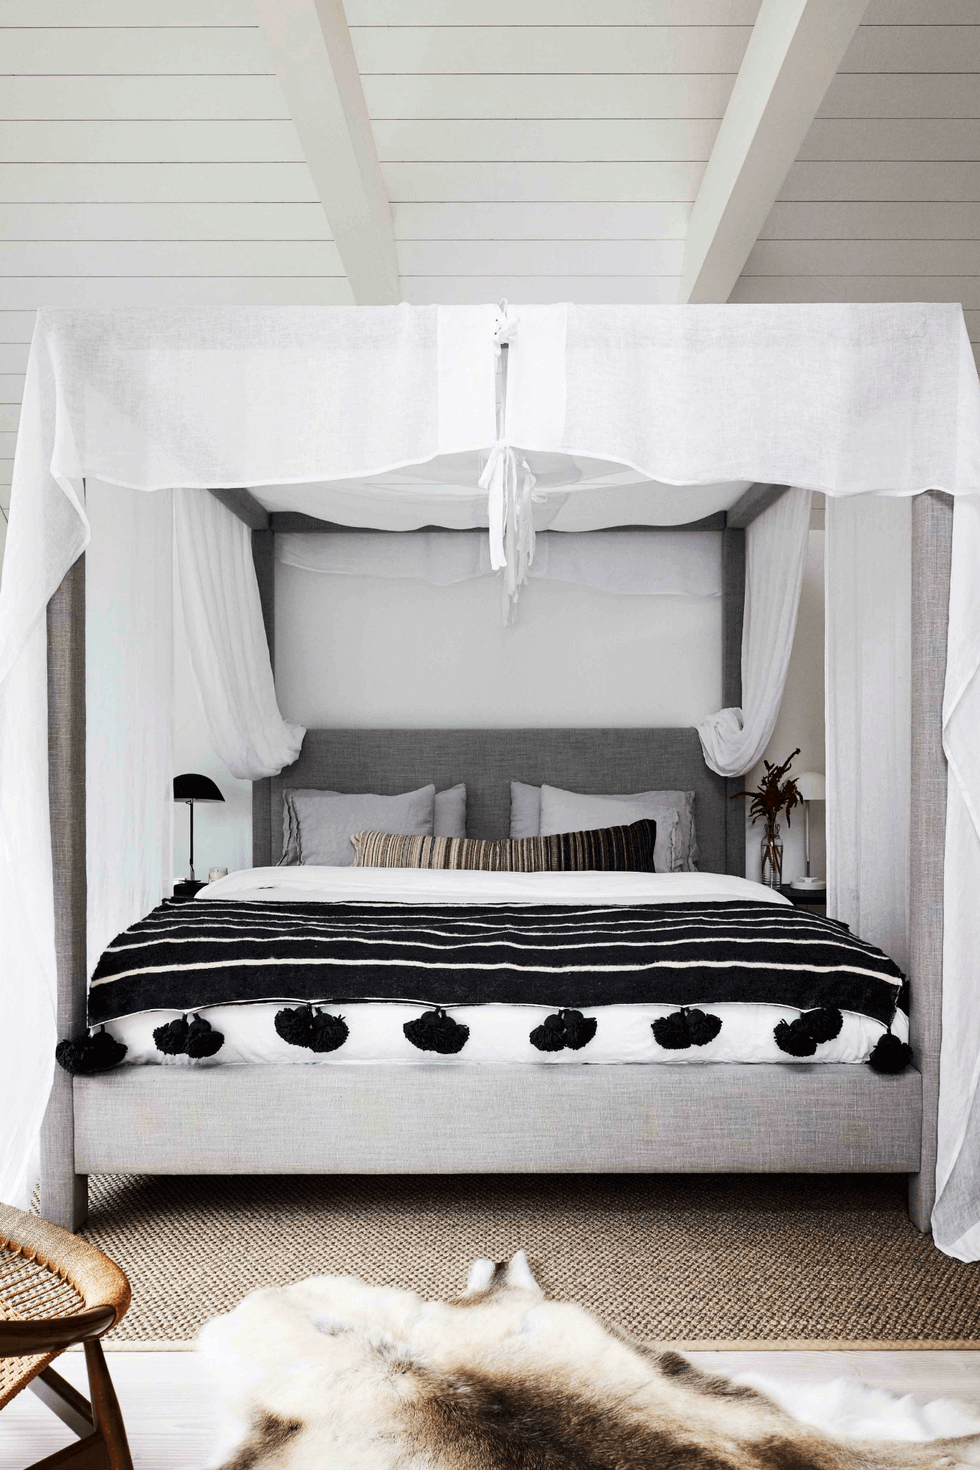 Small Master Bedroom Ideas 2020 21 Layer Your Rugs